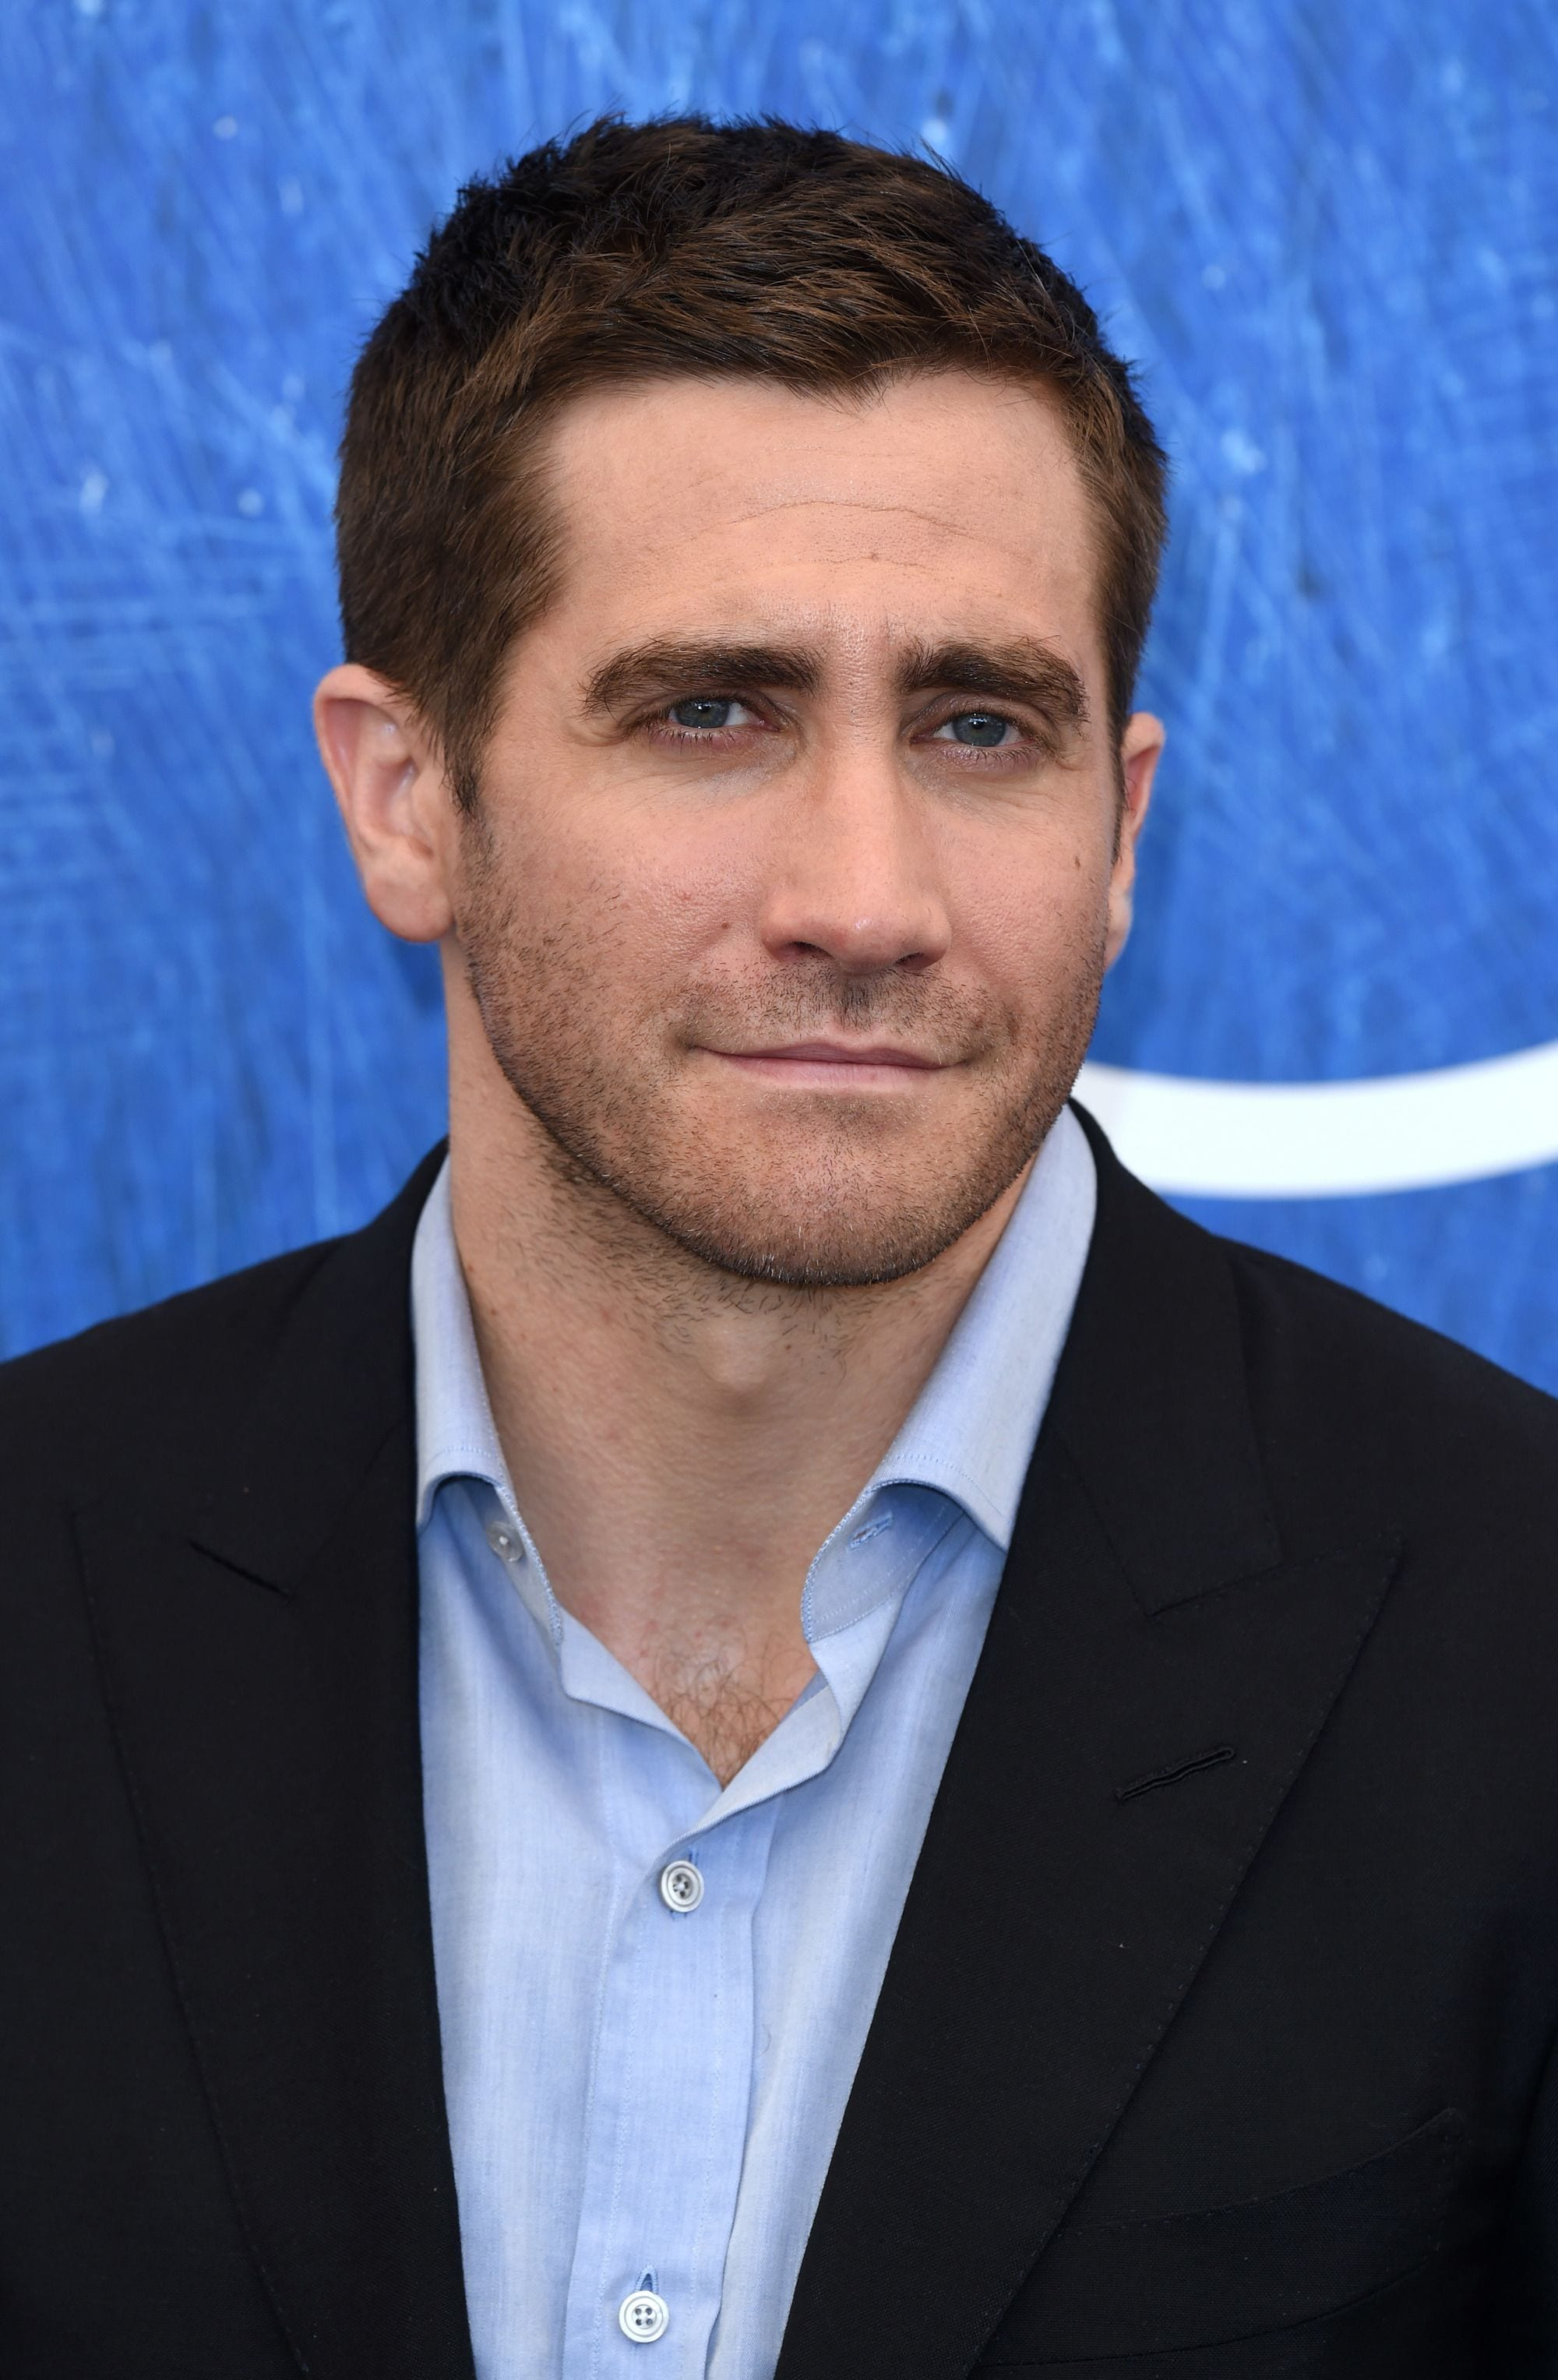 Jake Gyllenhaal brown hair in classic ivy league style